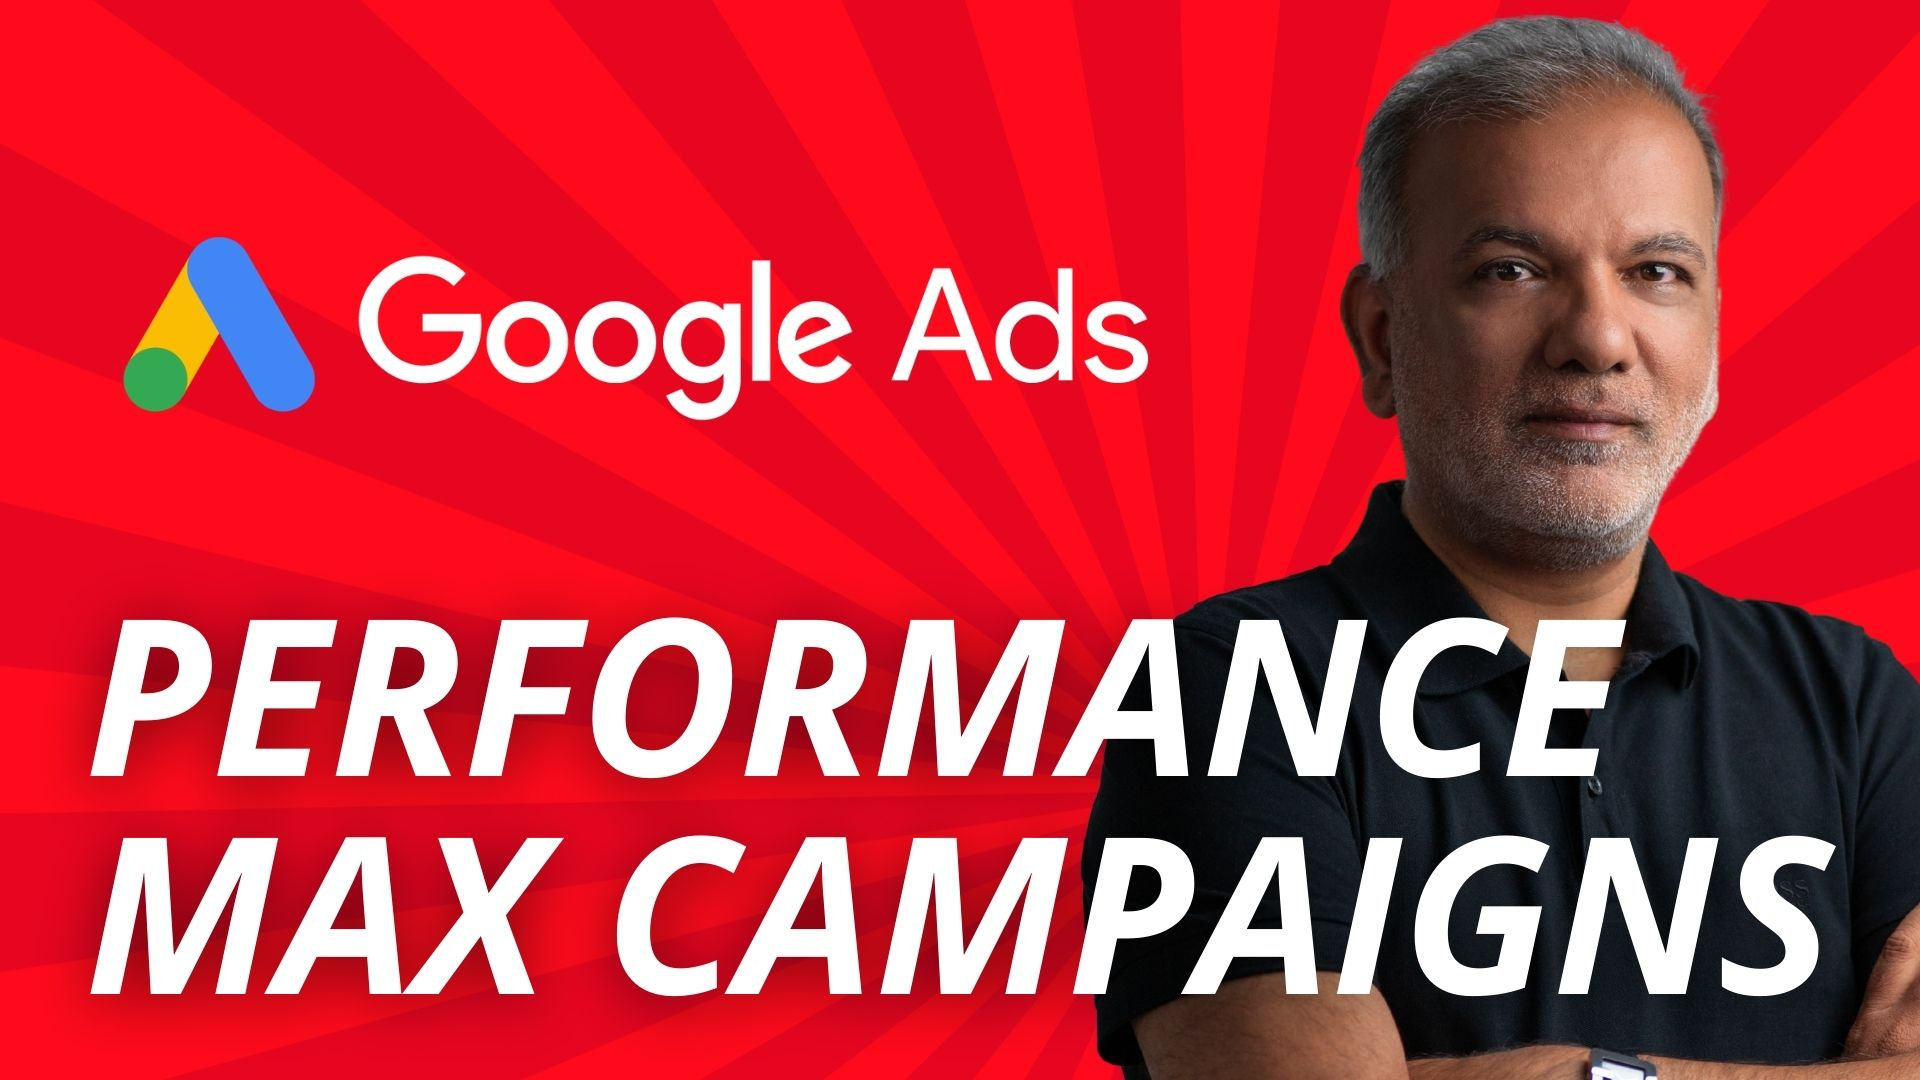 What Are Performance Max Campaigns In Google Ads?